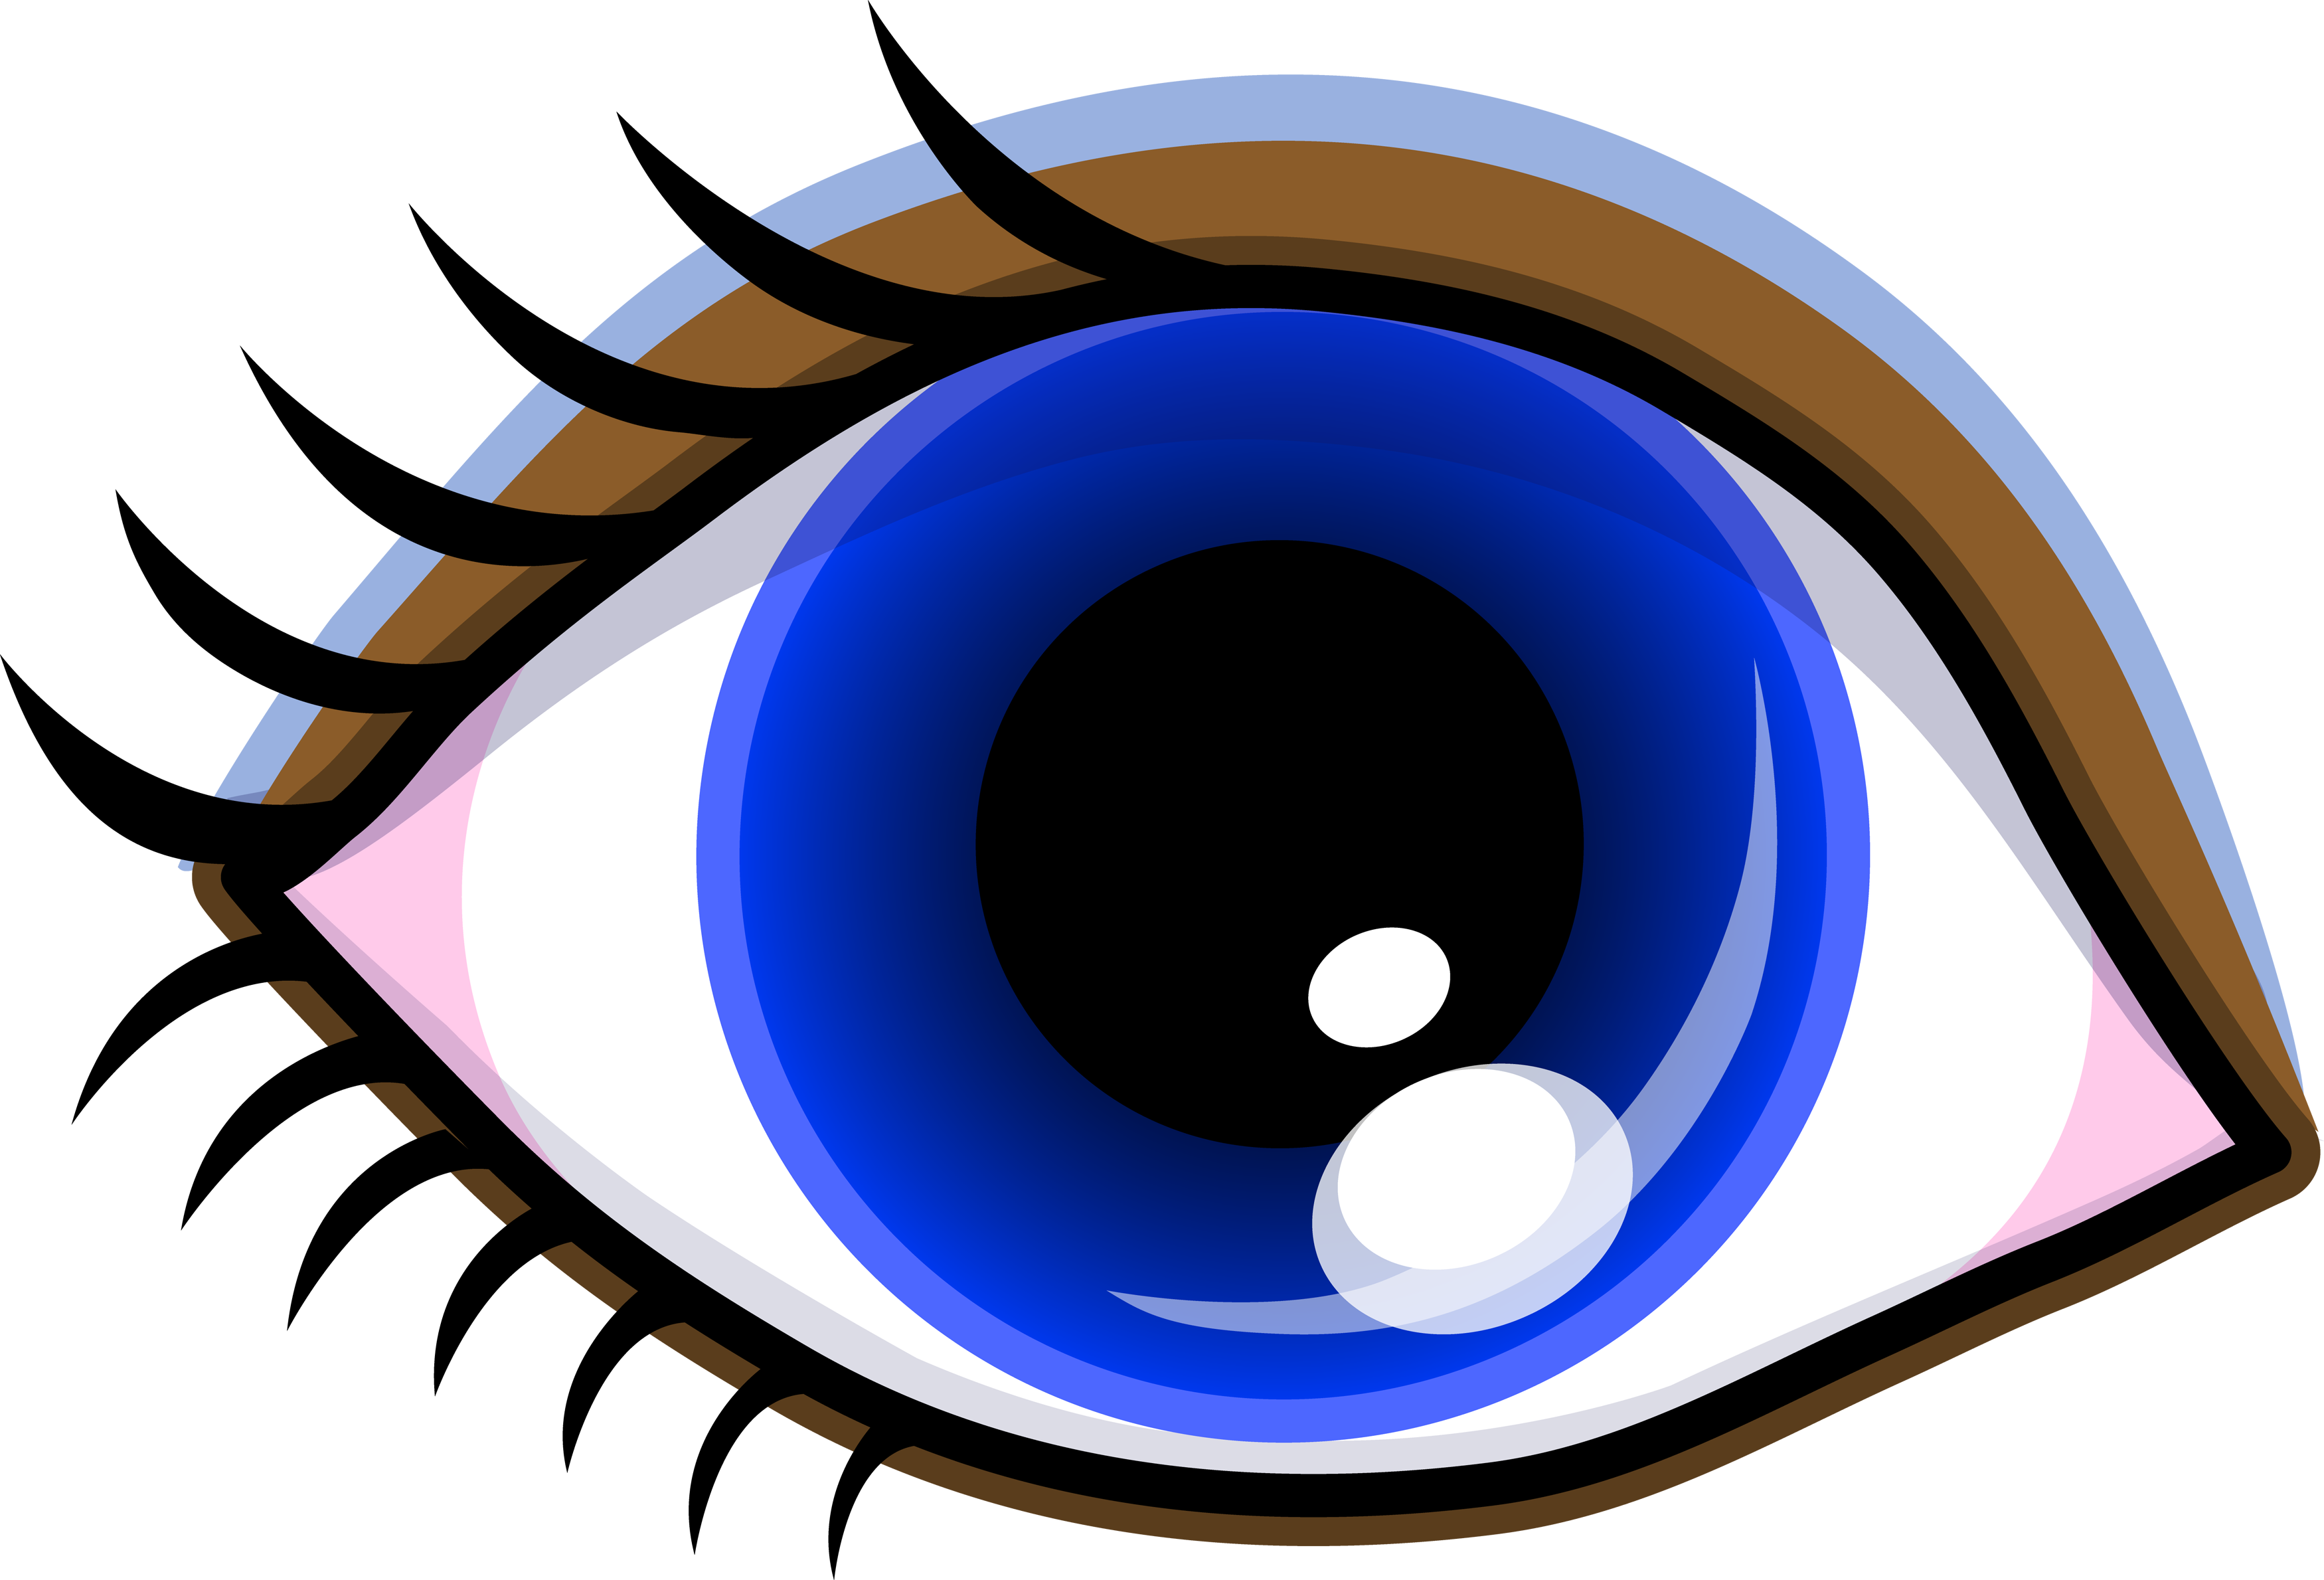 Blue Eyes clipart #9, Download drawings